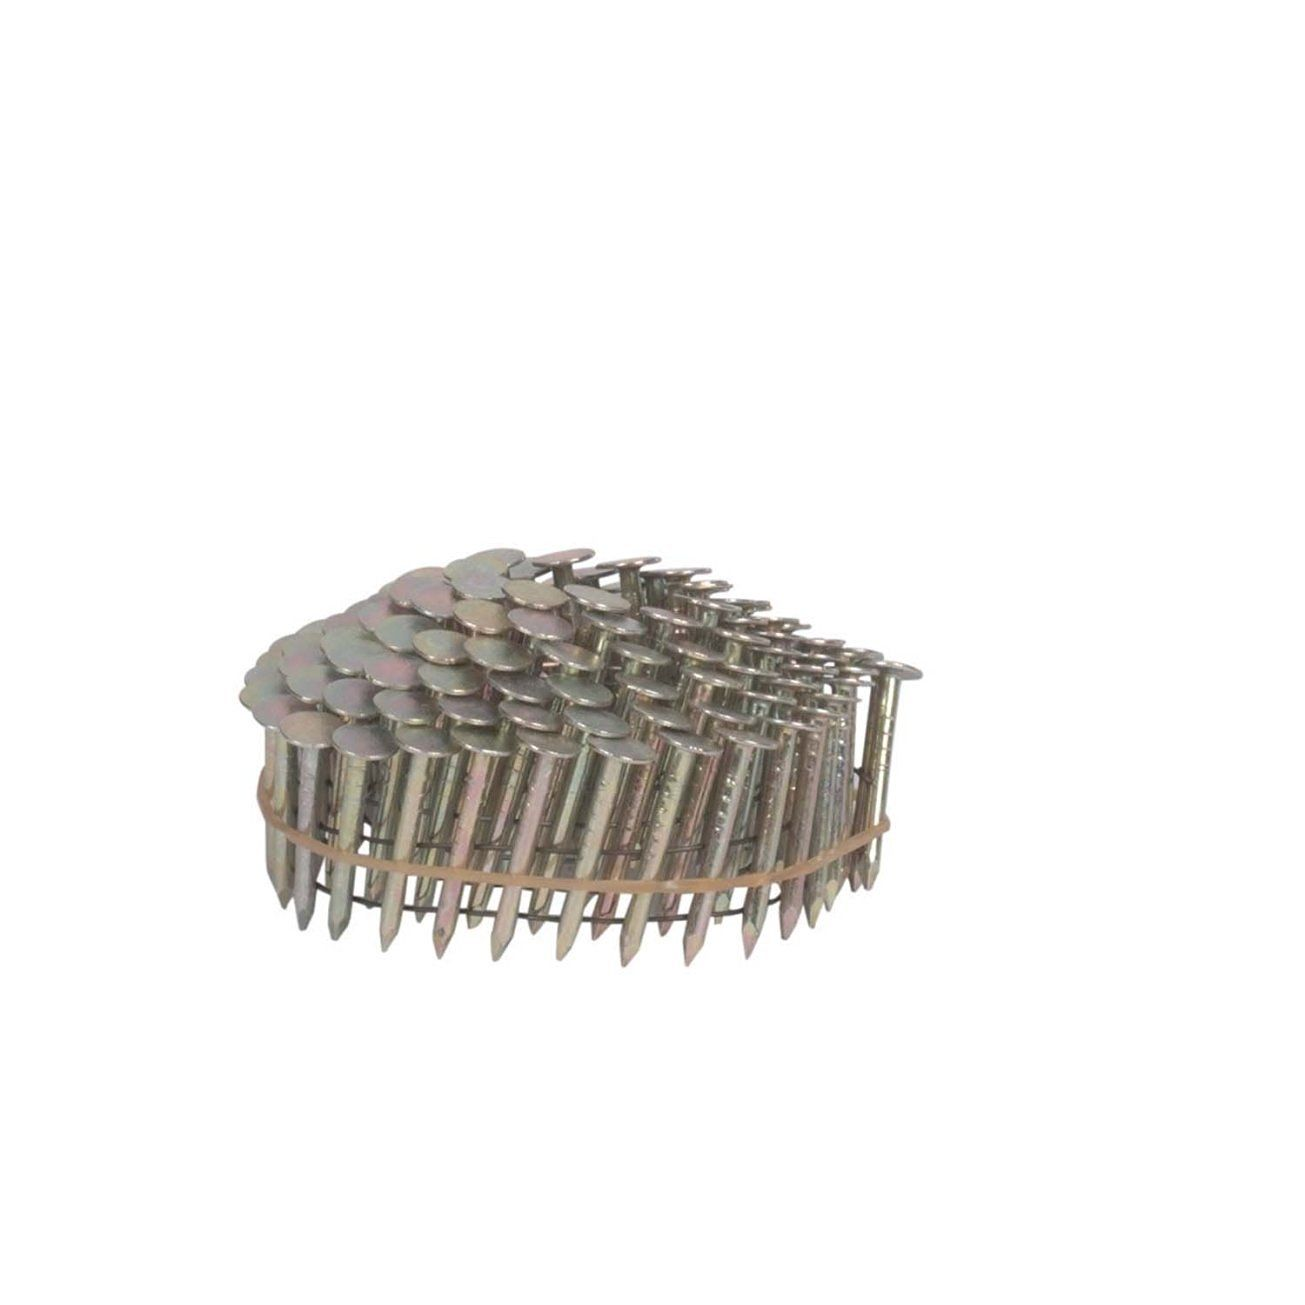 Bostitch Coil Roofing Nail Want To Know More Click On The Image Roofing Nails Roofing Nails